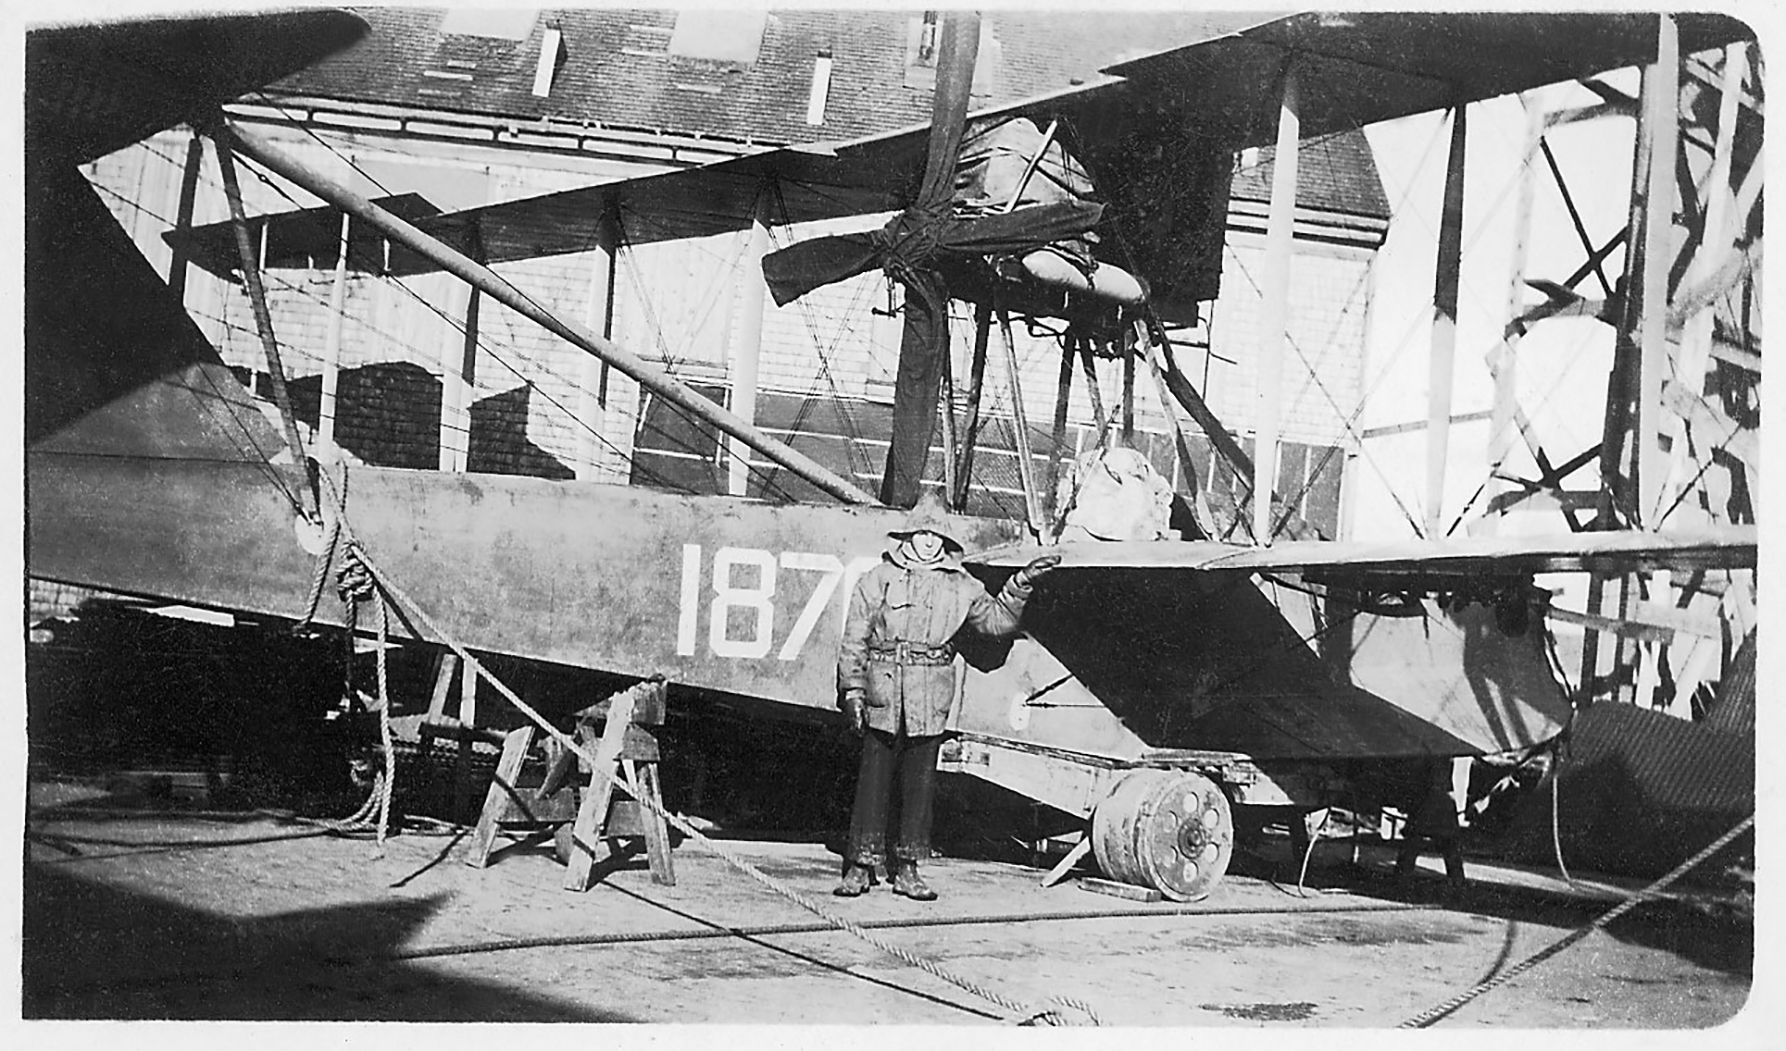 A vintage photo of a person standing beside the fuselage of a large biplane that has its engine mounted on the top wing, with other aircraft and large buildings in the background.